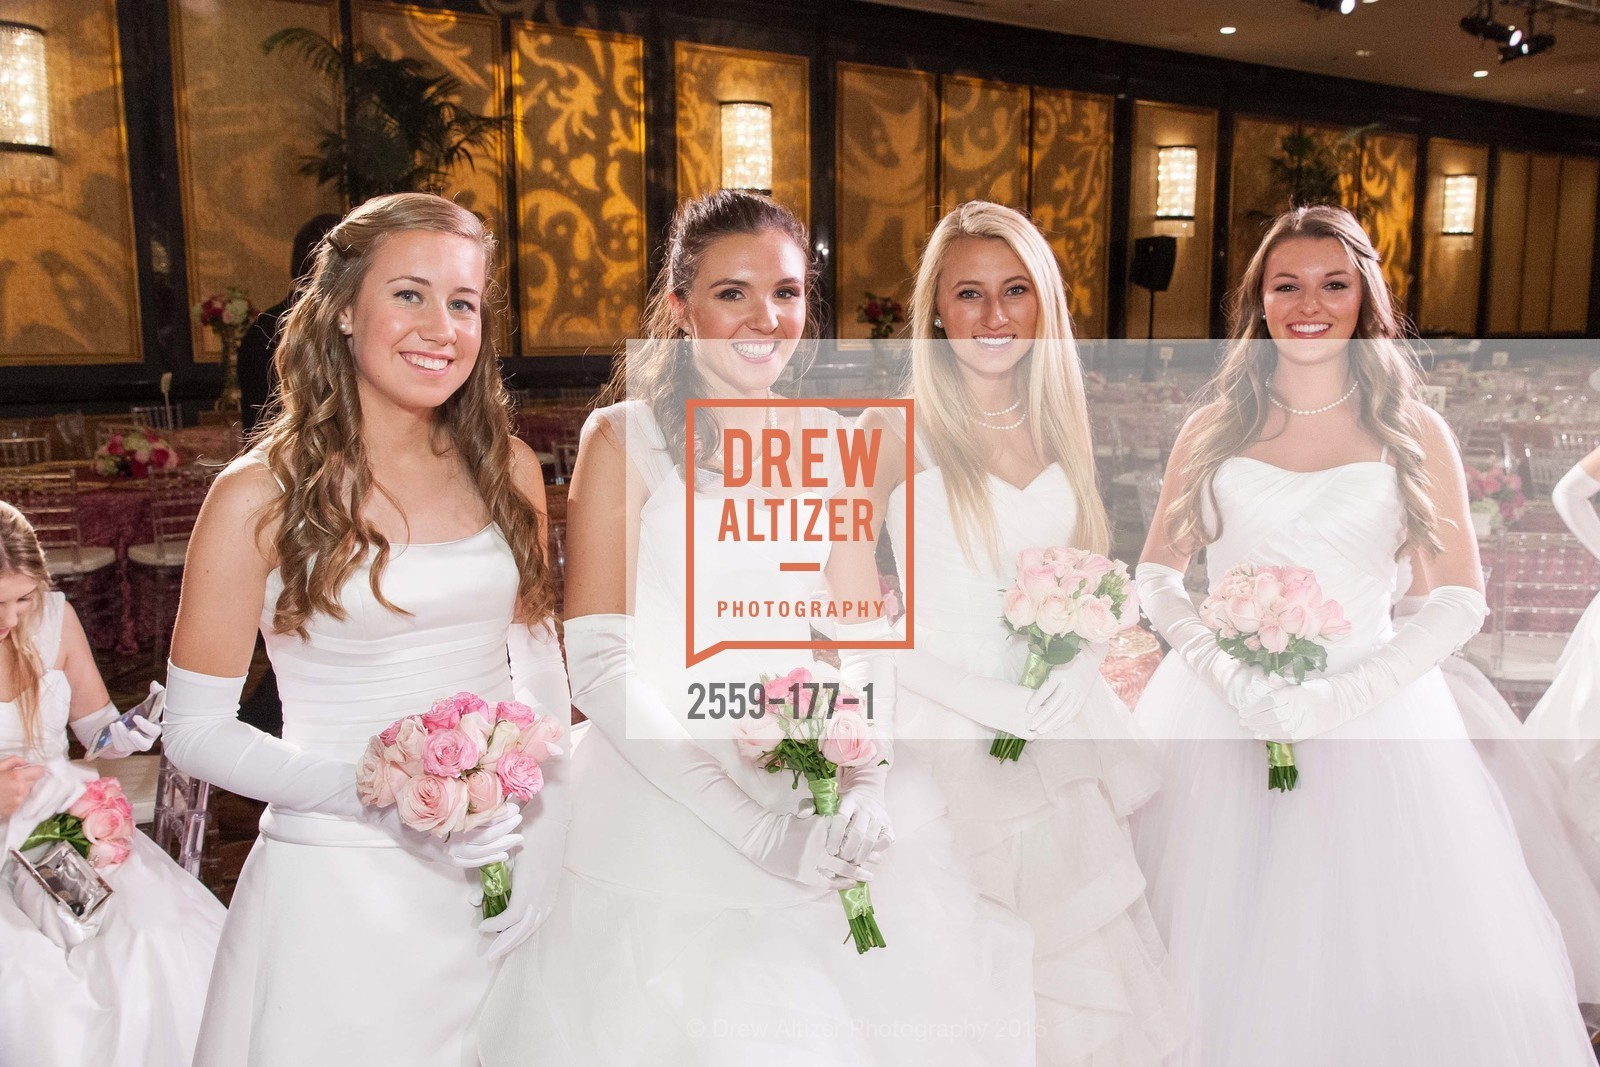 Sarah Elisabeth Jackmauh, Jennifer Hannah Baylis, Mary Elizabeth Grinnell, Rachael Jayne Maier, The 2015 San Francisco Debutante Ball, The Westin St. Francis San Francisco Union Square. 335 Powell St, June 20th, 2015,Drew Altizer, Drew Altizer Photography, full-service agency, private events, San Francisco photographer, photographer california